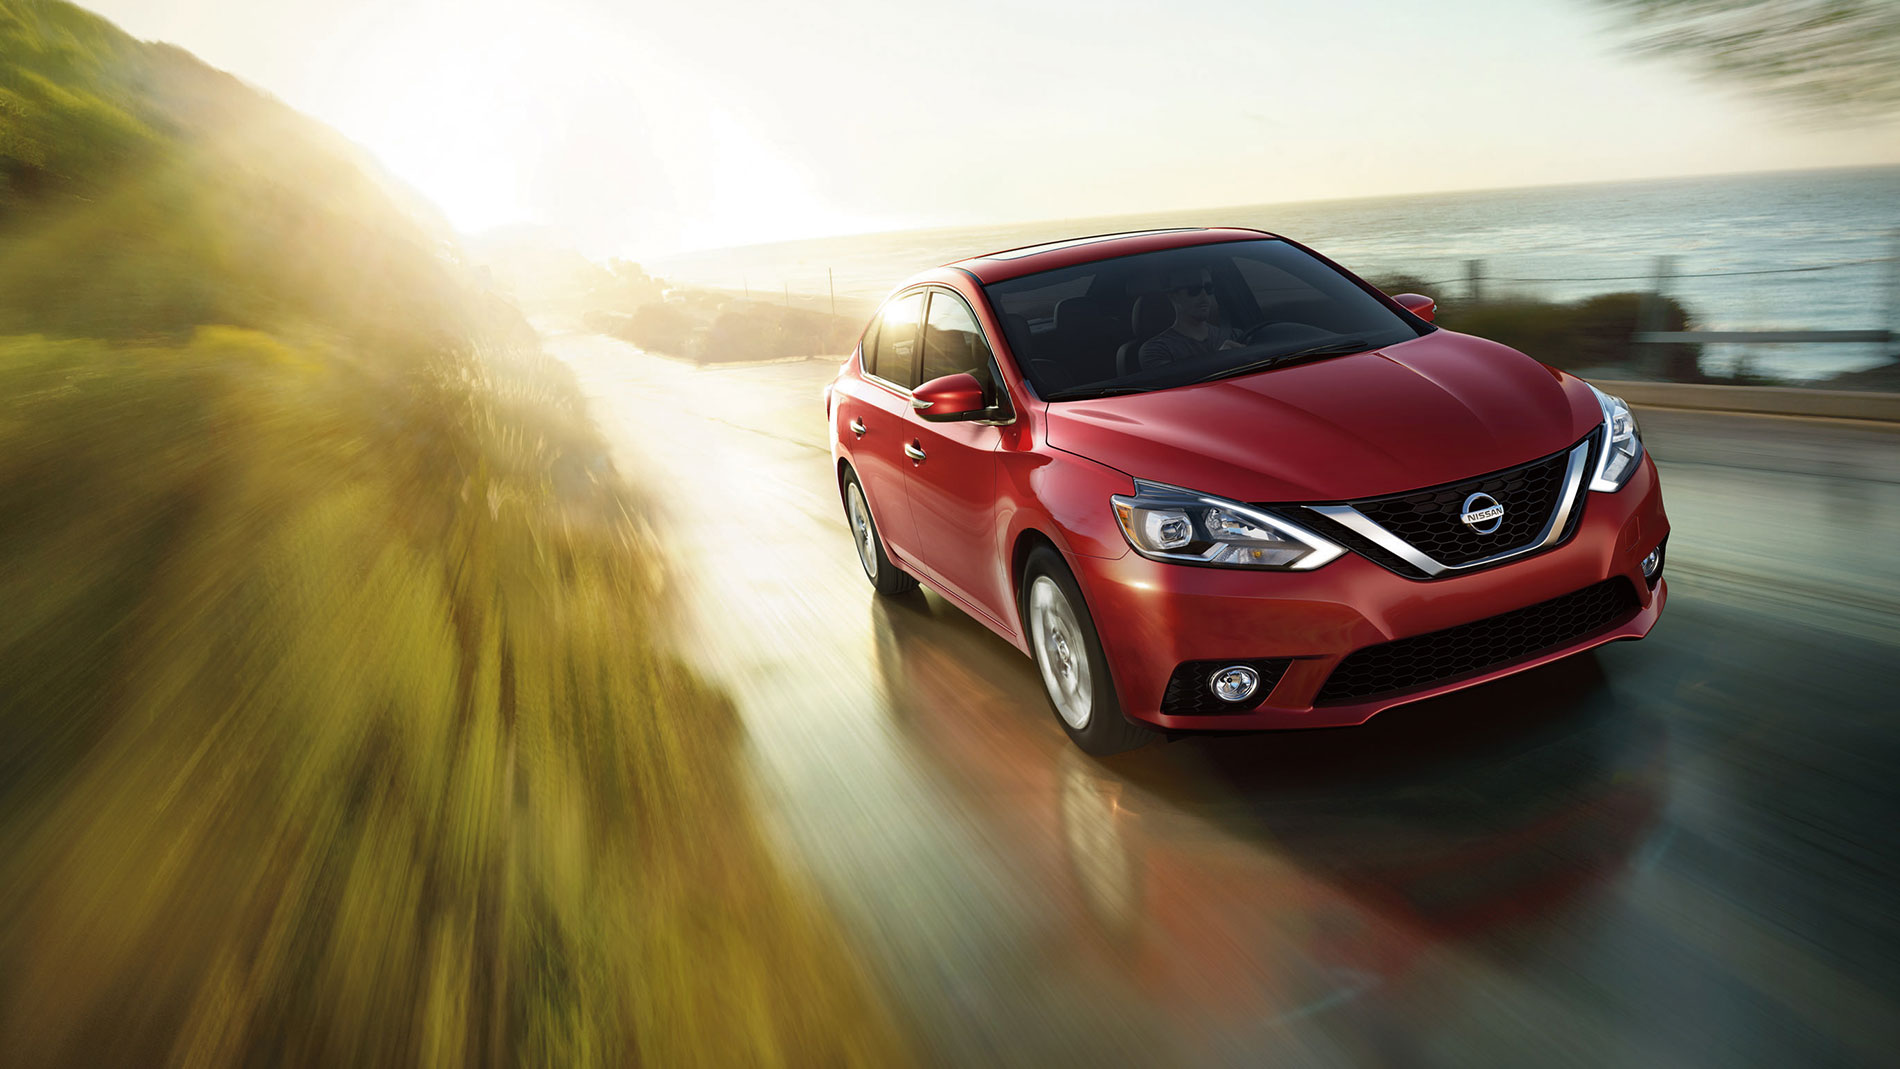 New Nissan Sentra Lease Offers and Best Prices | Quirk Nissan